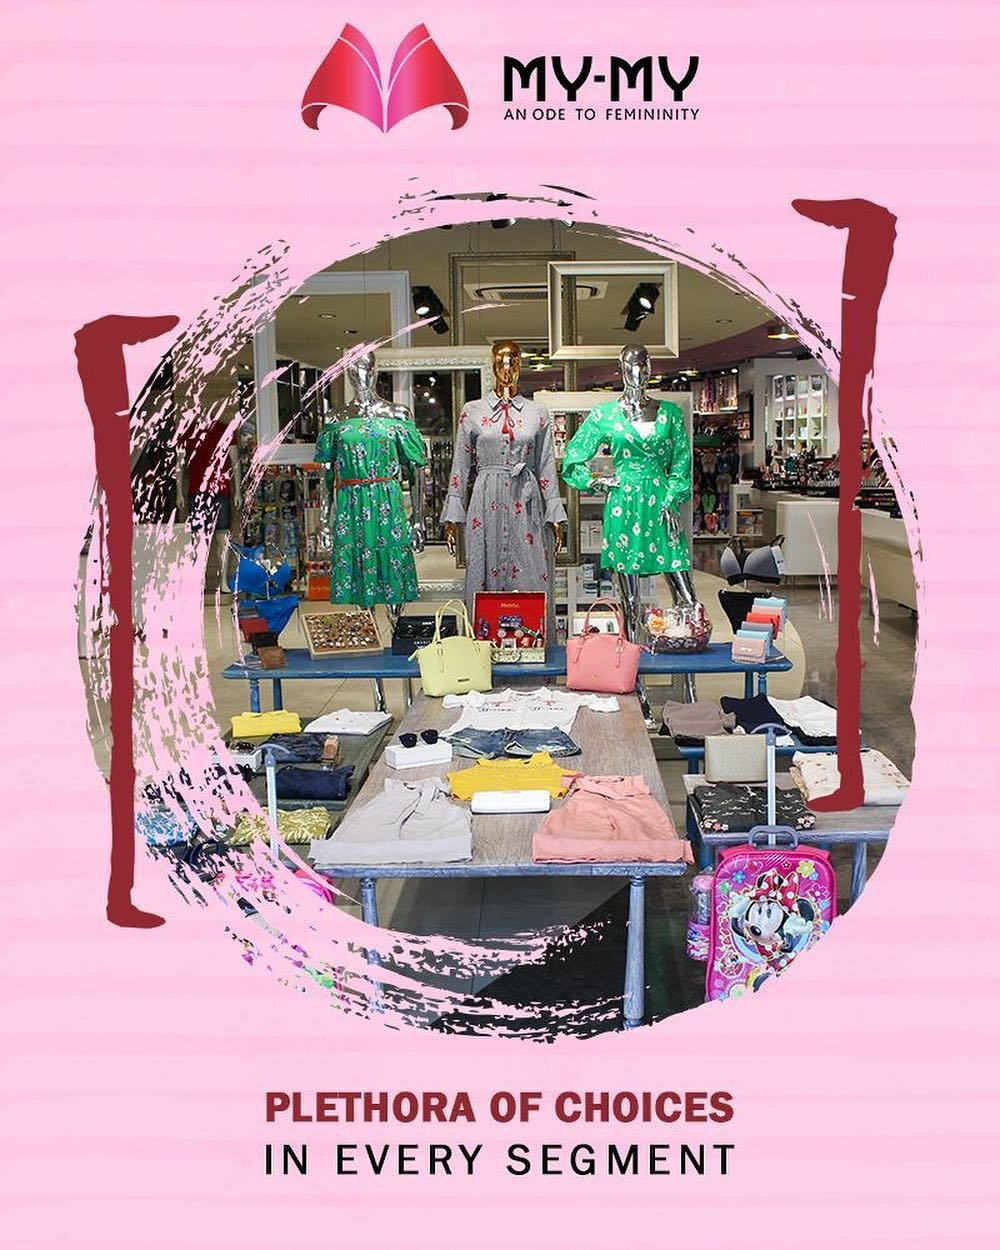 Our aim is to spoil you for choices for all your fashion needs!  #MYMYSale #MyMy #MyMyAhmedabad #Fashion #Ahmedabad #FemaleFashion